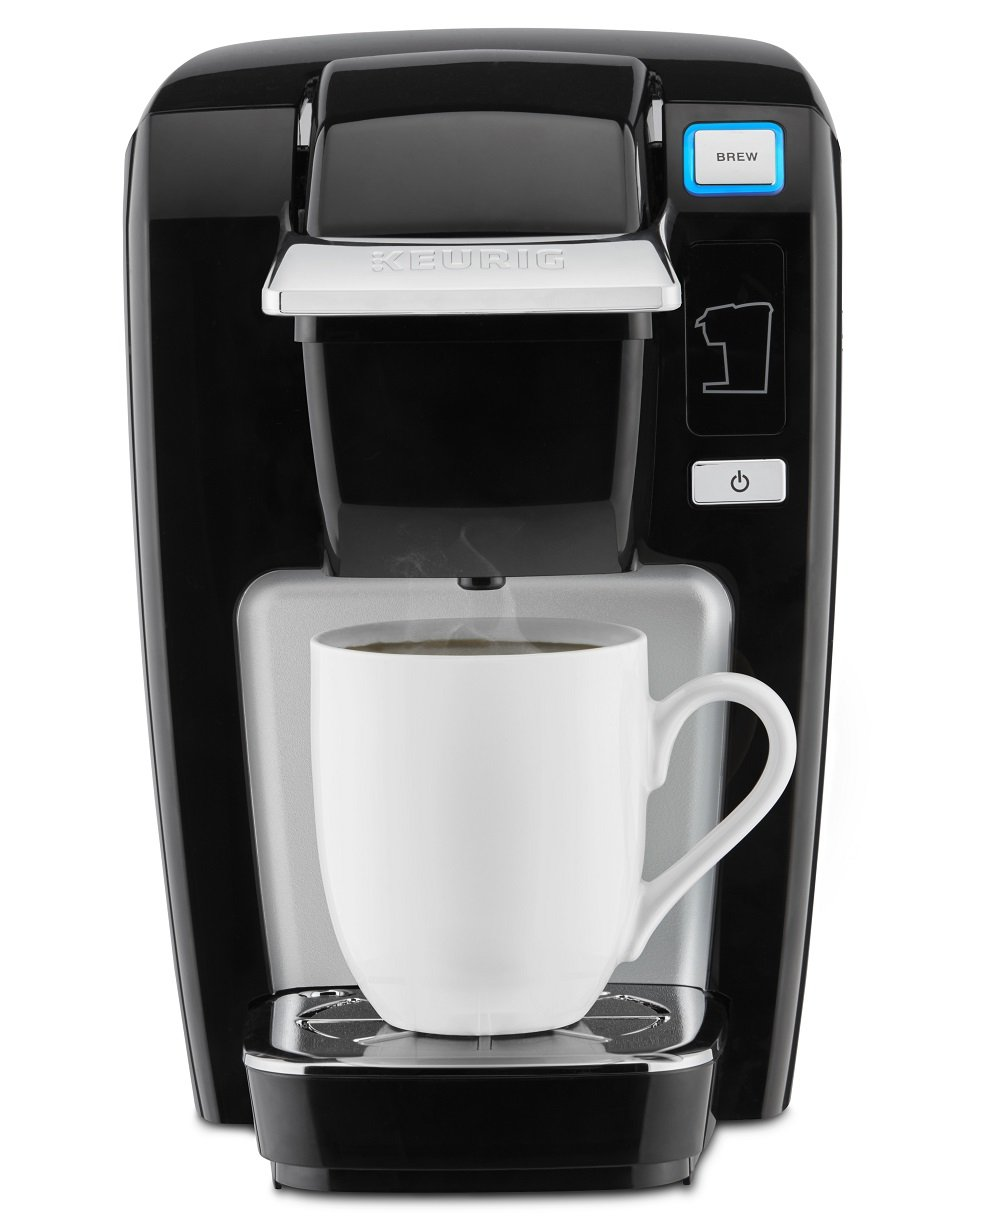 Keurig K-Mini K15 Single-Serve K-Cup Pod Coffee Maker, Black by Keurig